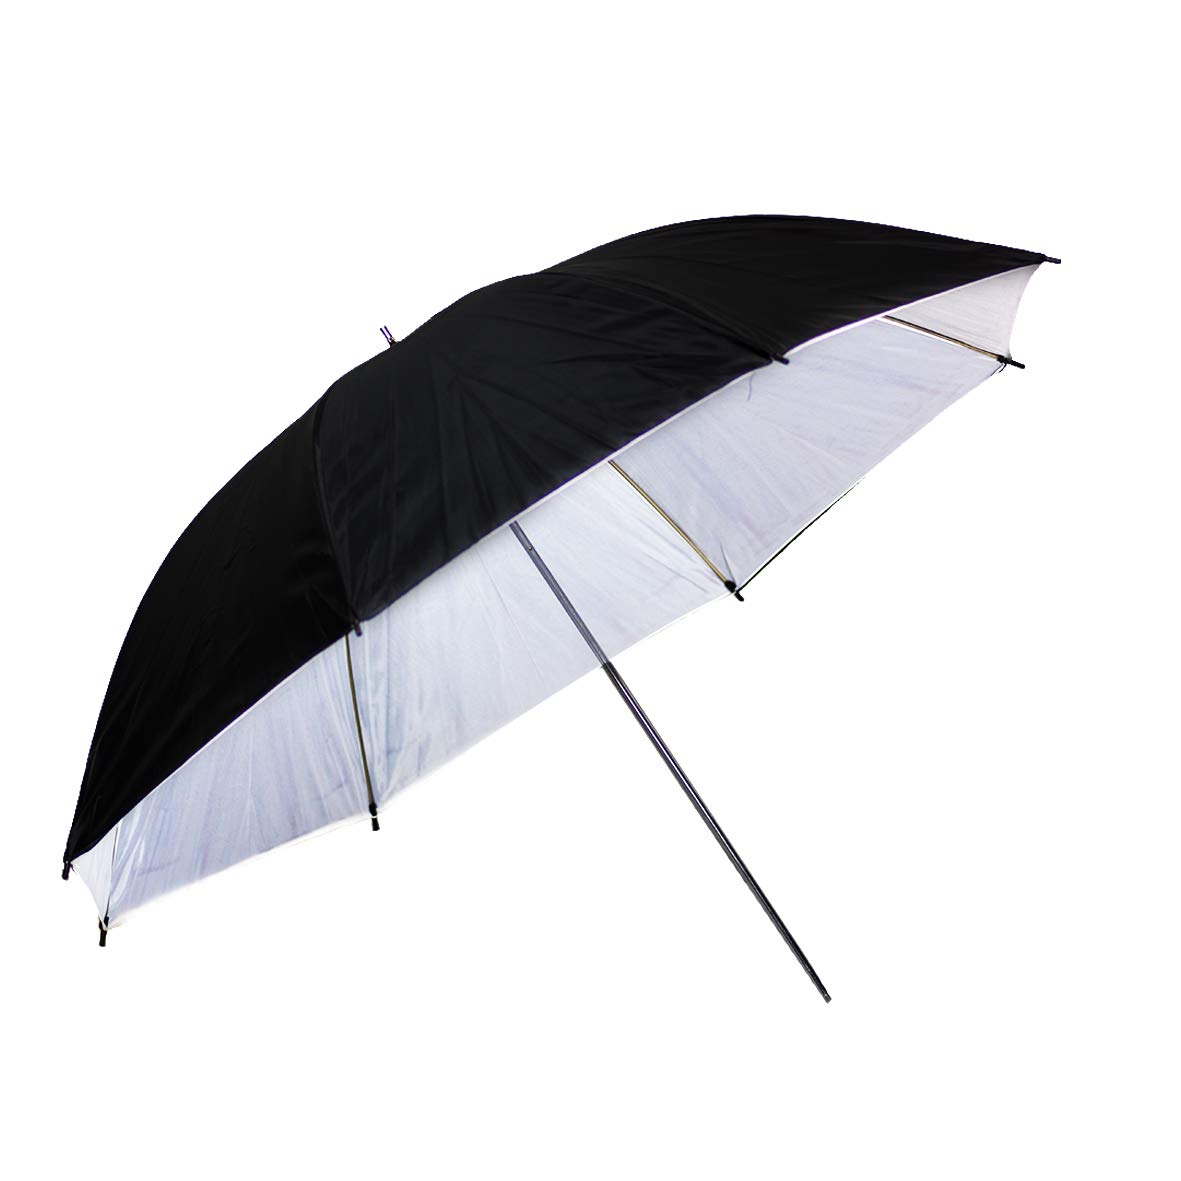 "LimoStudio Photography Video 40"" Double Layered Black & White Photo Studio Reflective Umbrella"